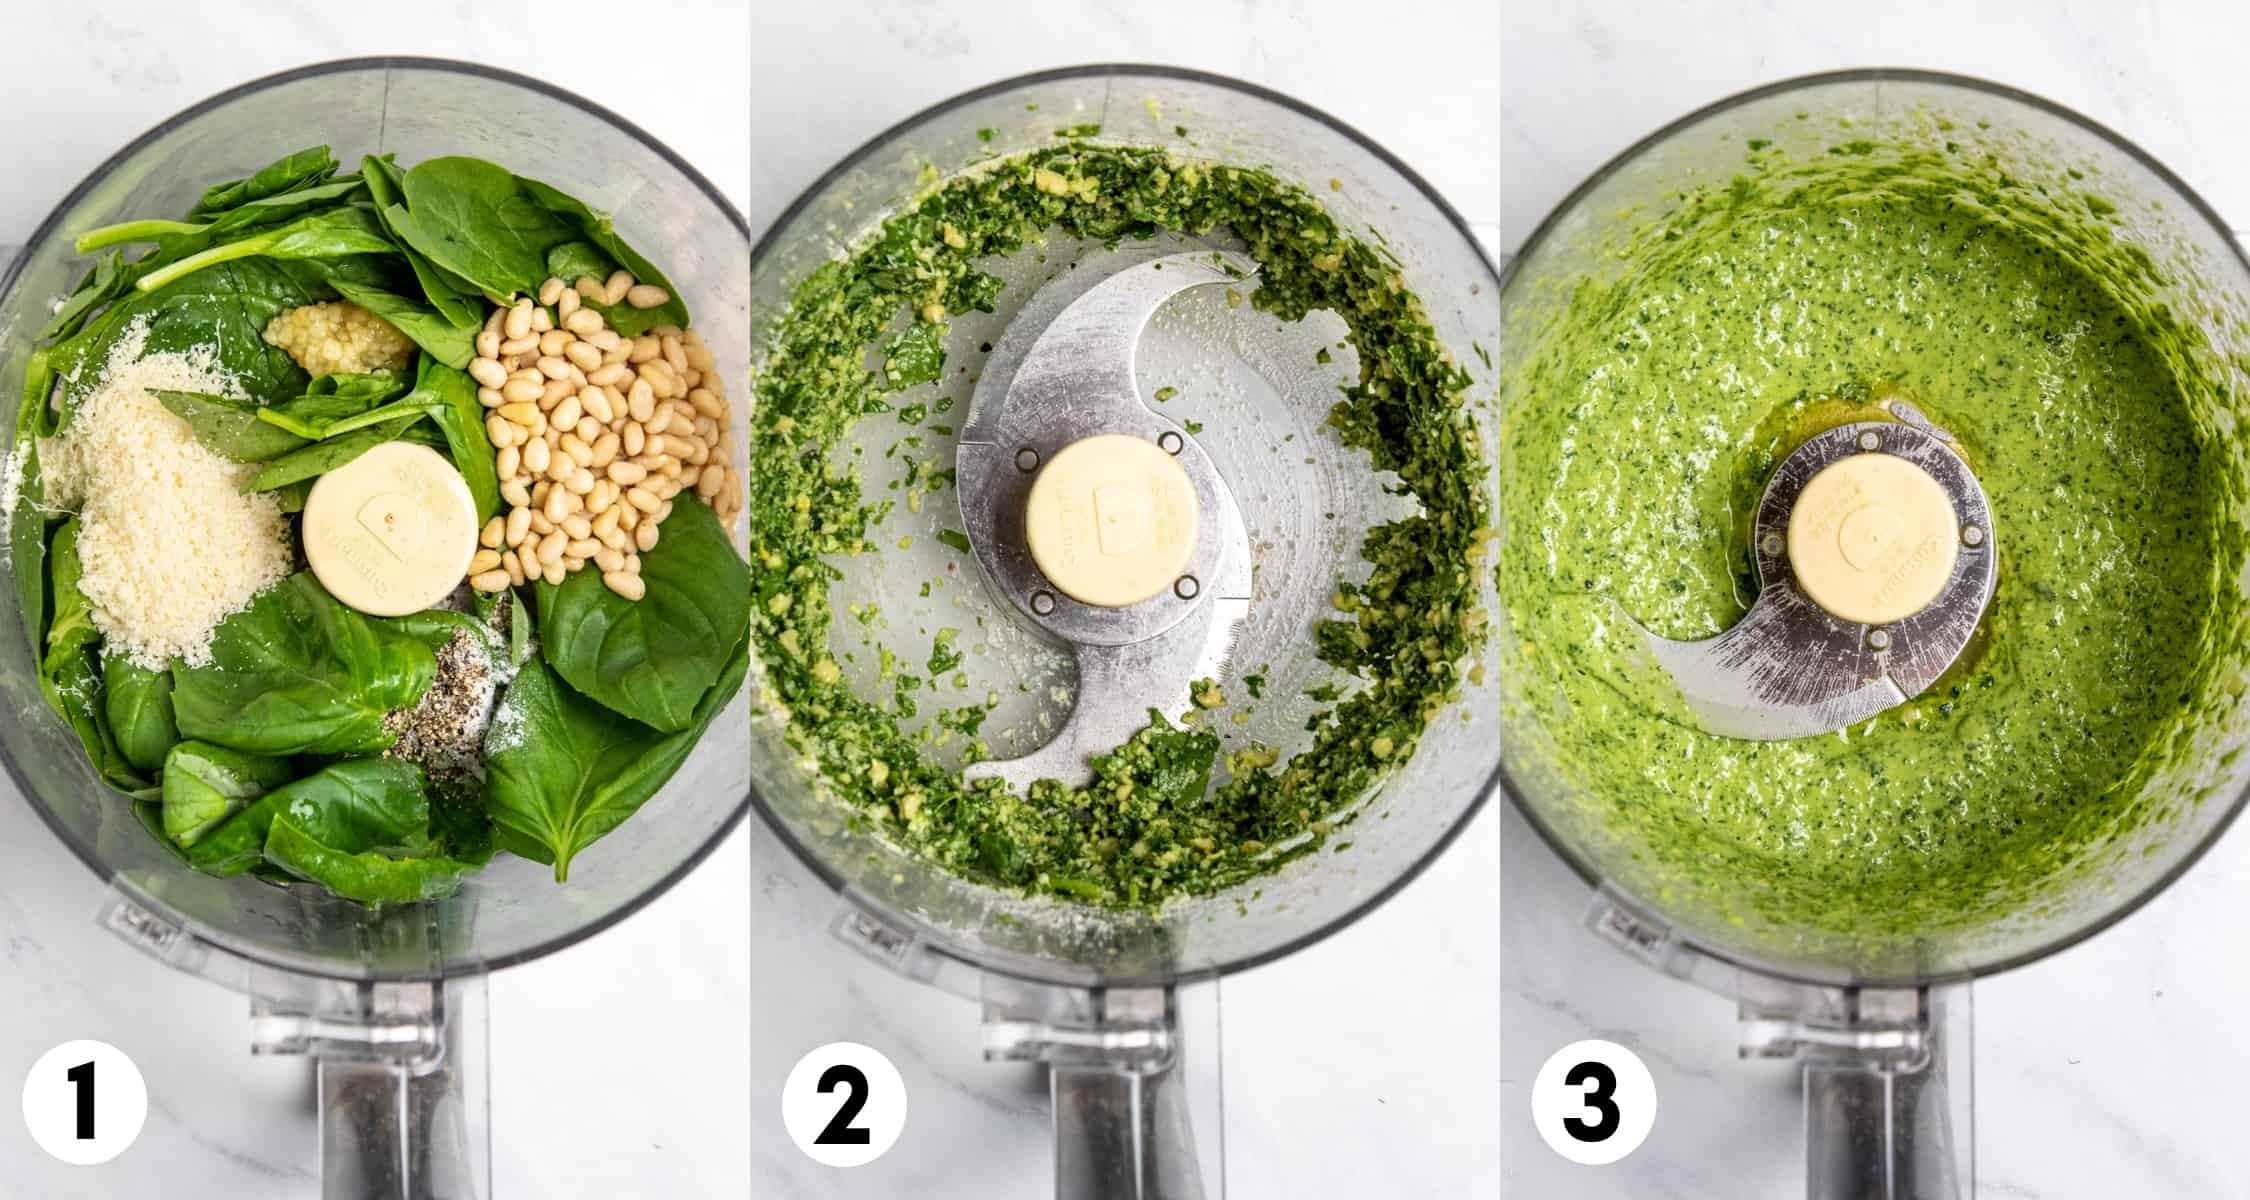 Pesto ingredients in food processor being processed into pesto.